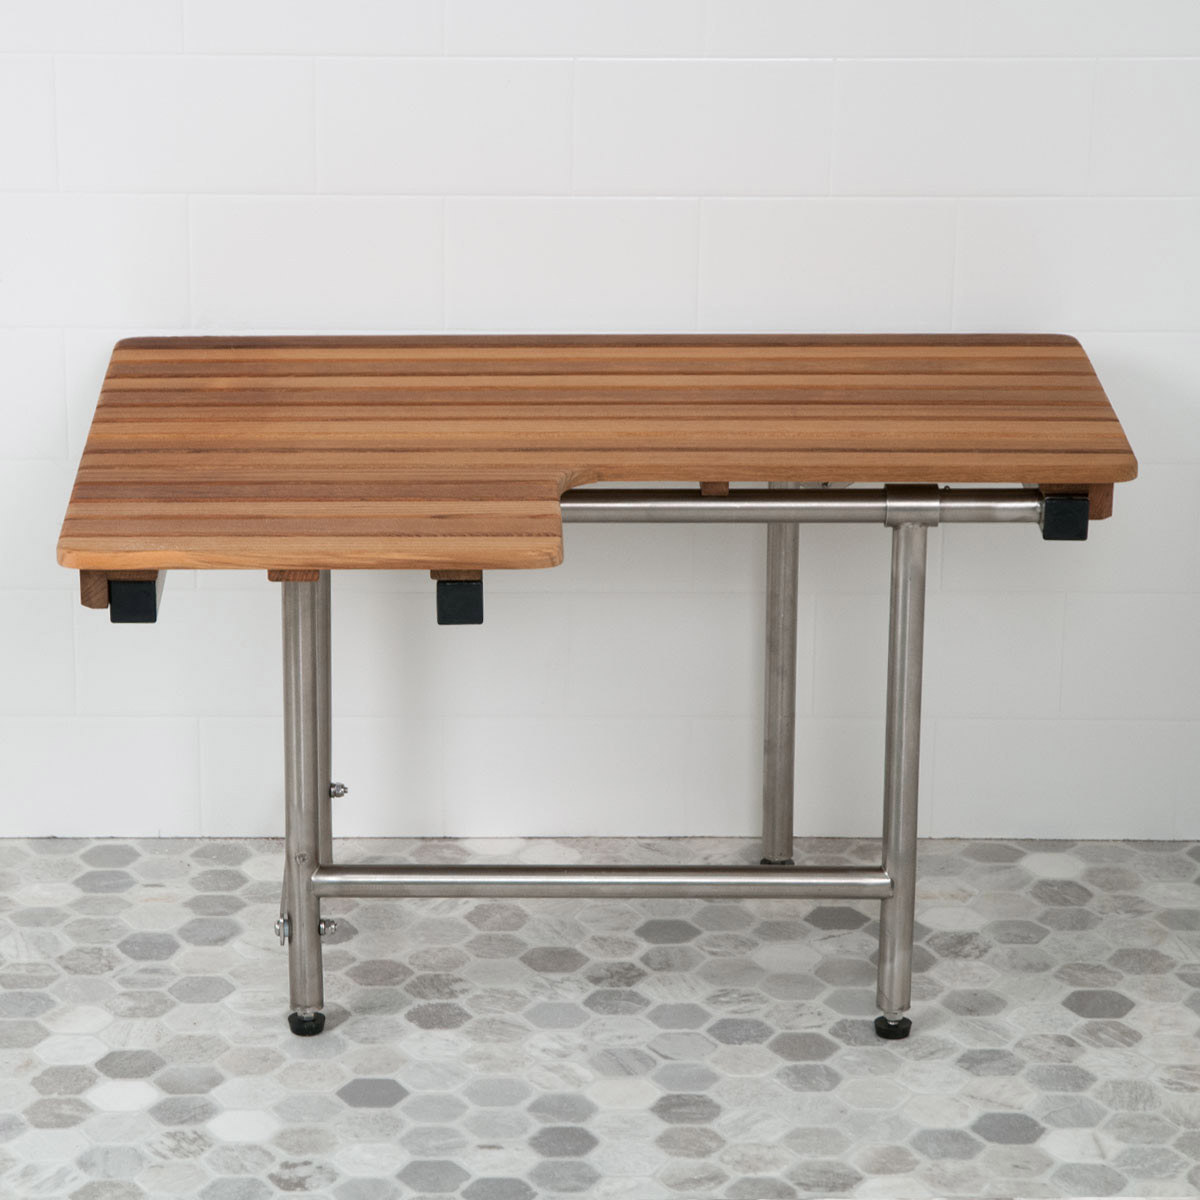 32 L X 22 1 2 D Ada Compliant Right Hand Wall Mount Teak Bench With Legs